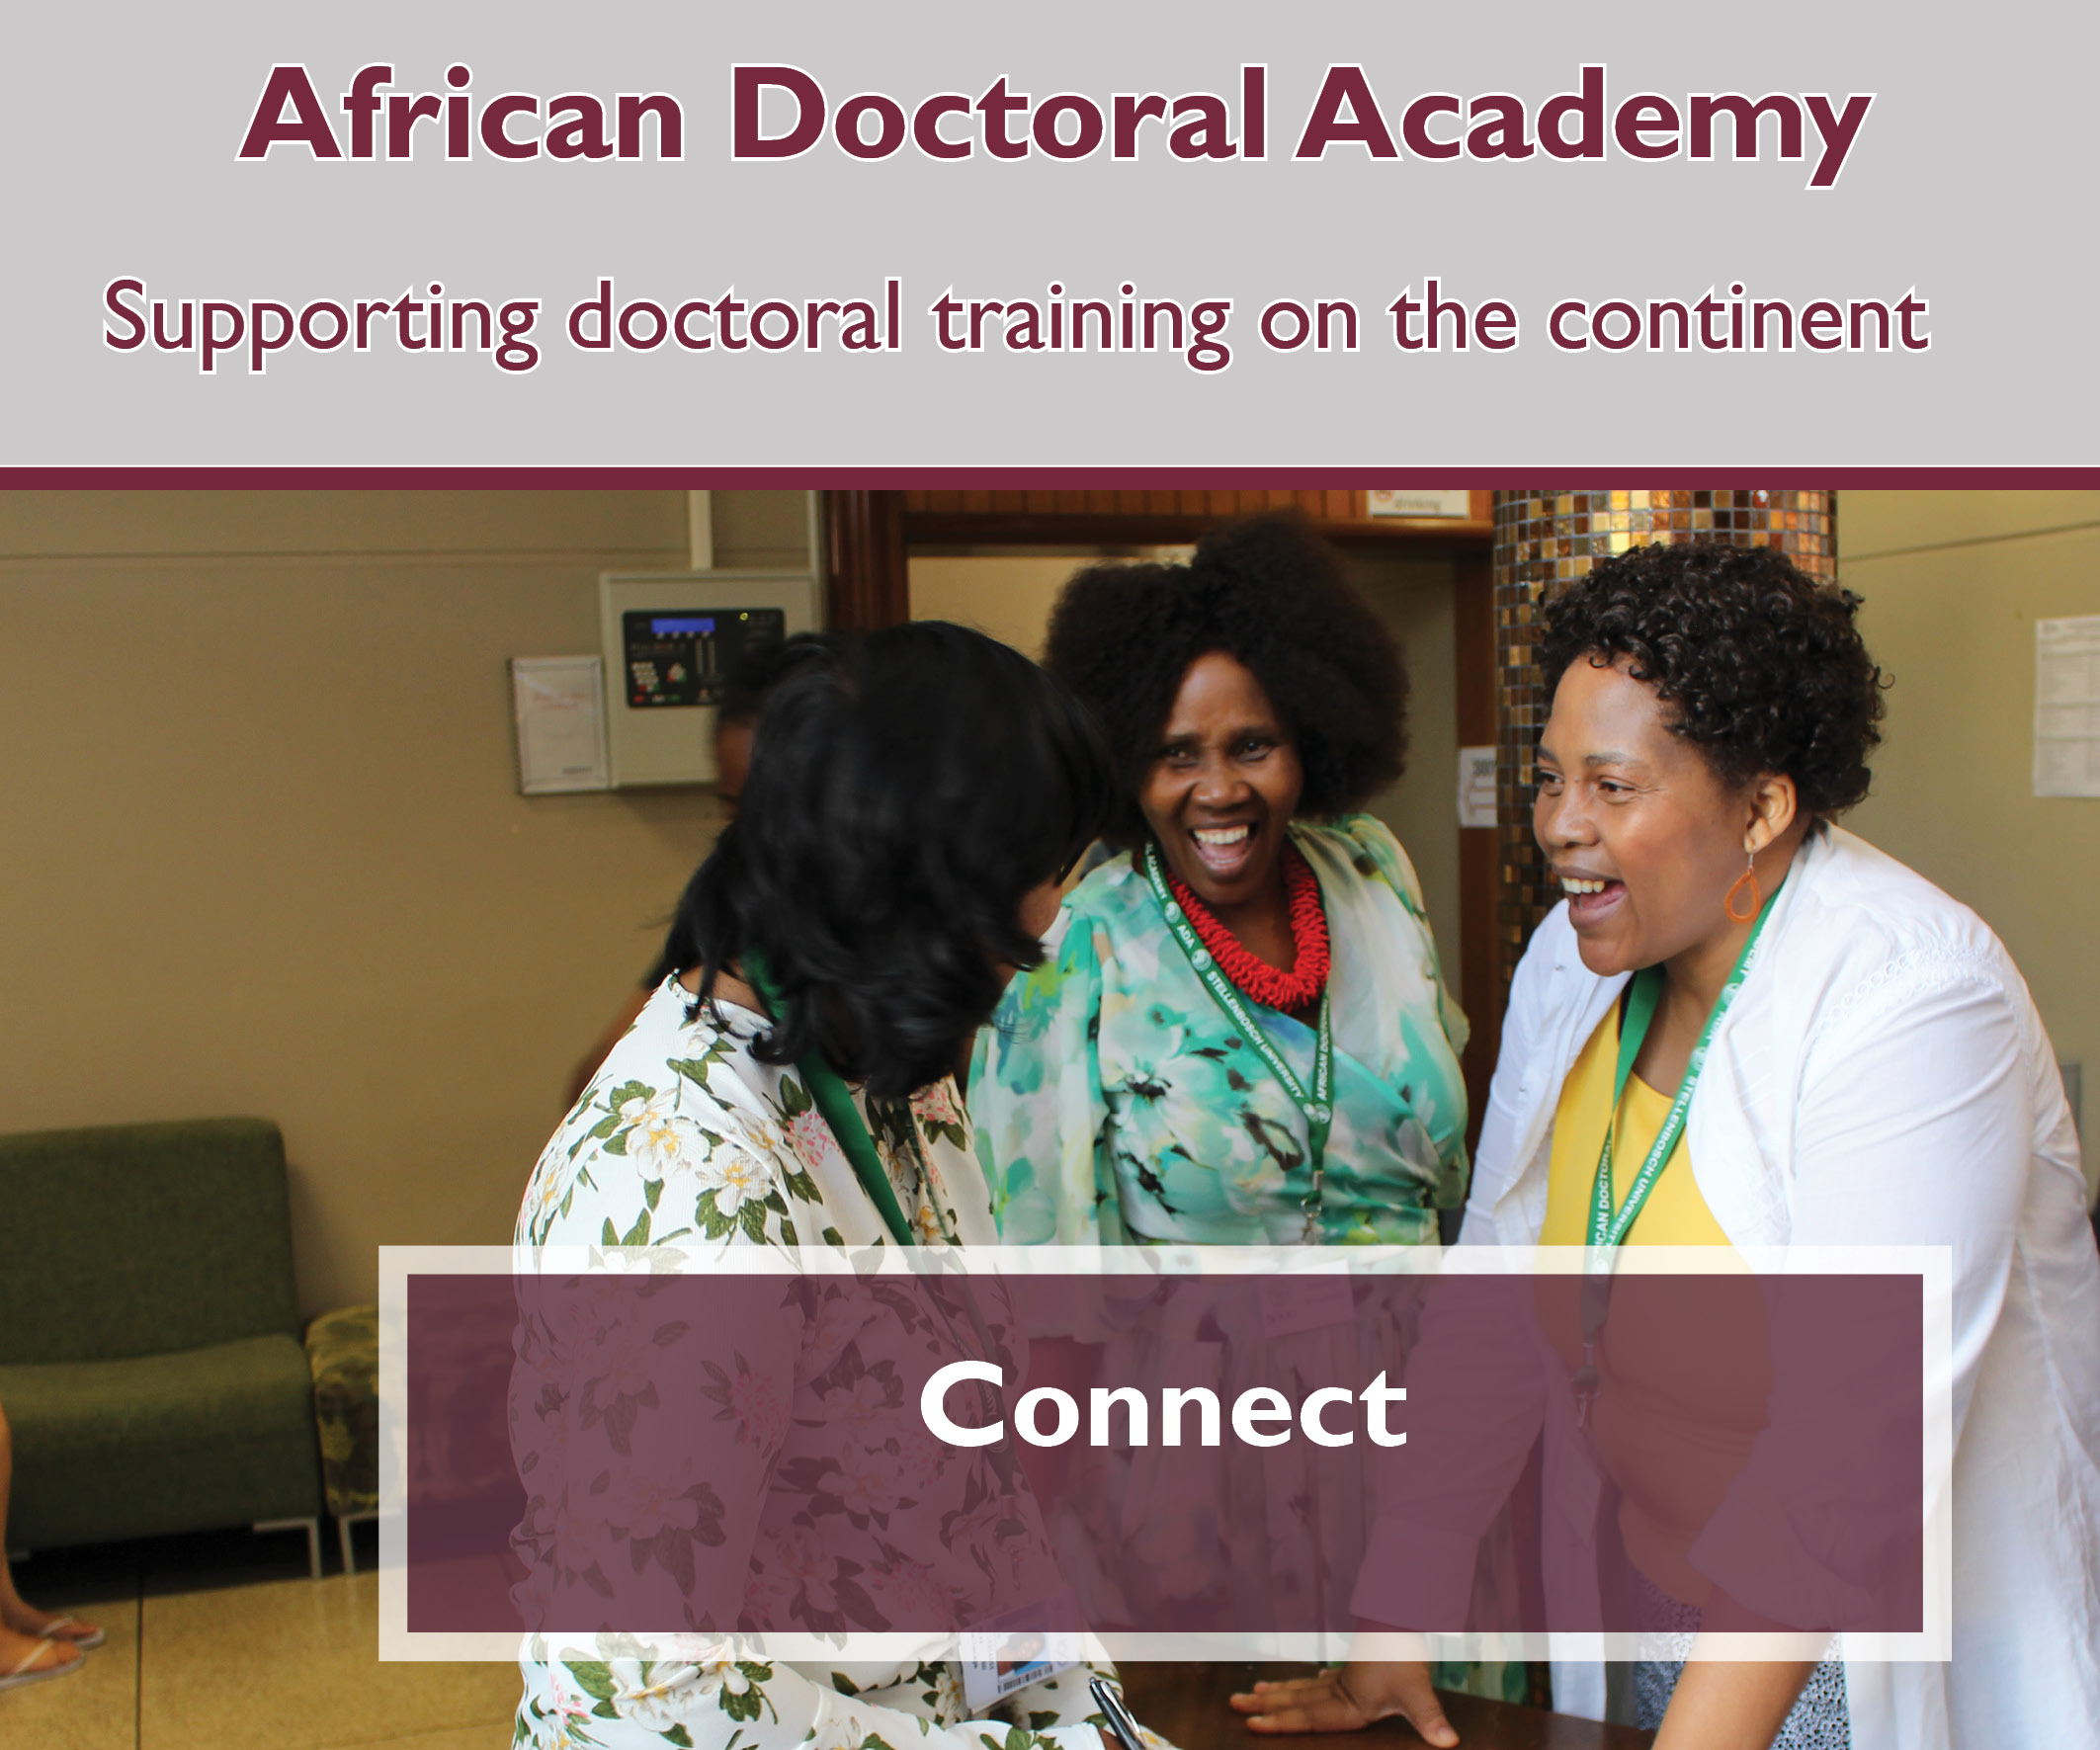 African Doctoral Academy